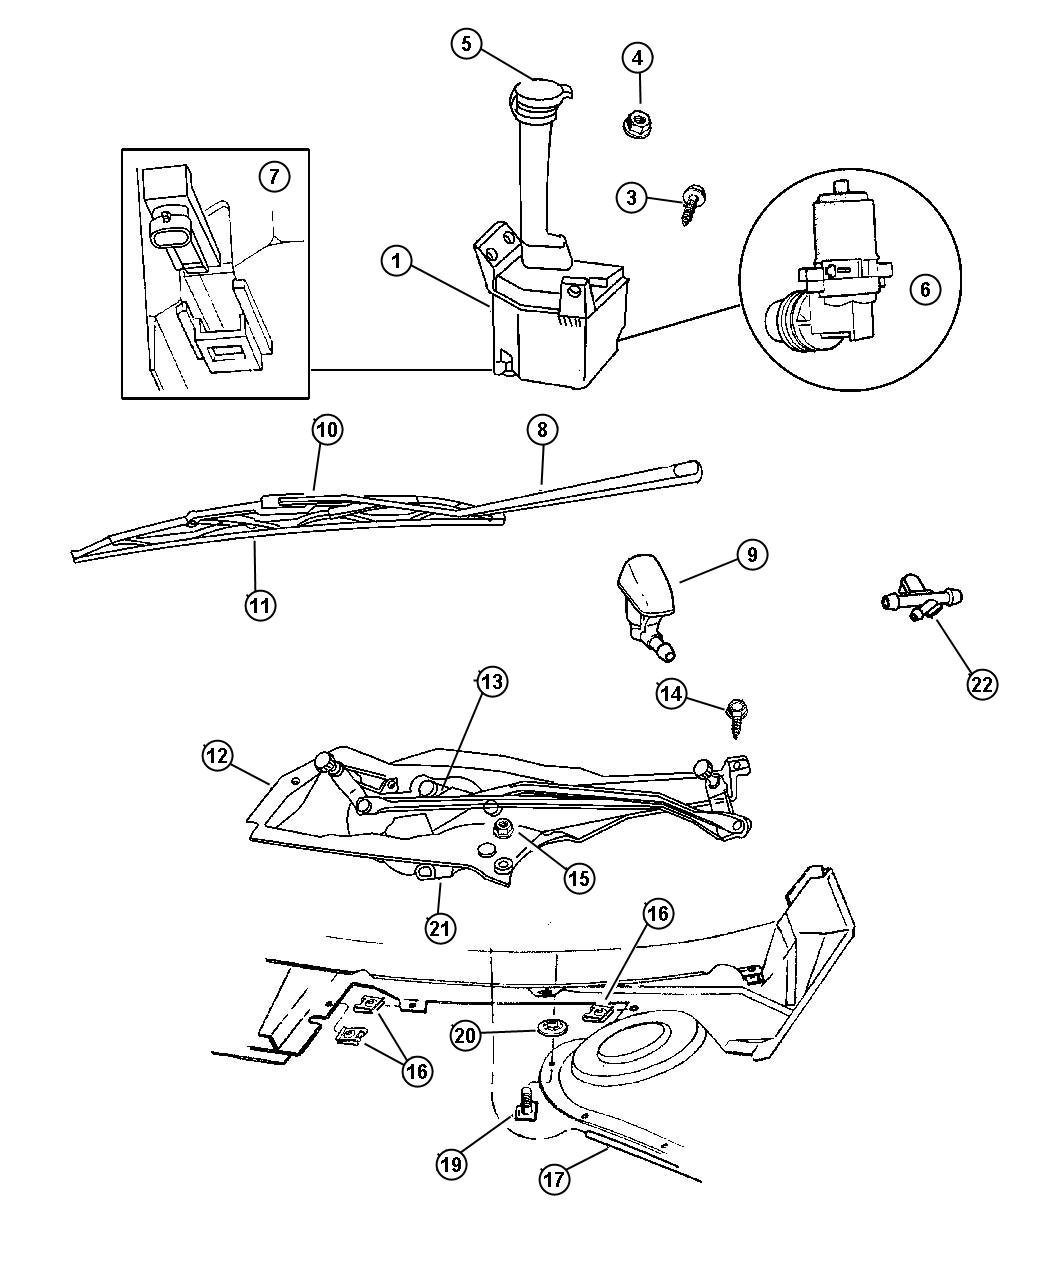 Discussion C1662 ds557010 moreover Dodge Gas Tank Straps further 4ho69 Dodge Intrepid Es 1995 Dodge Intrepid 3 5 Sohc Low Oil Flow as well 06501549 together with Bosal Exhaust 079 3082 Catalytic Converter. on dodge intrepid year